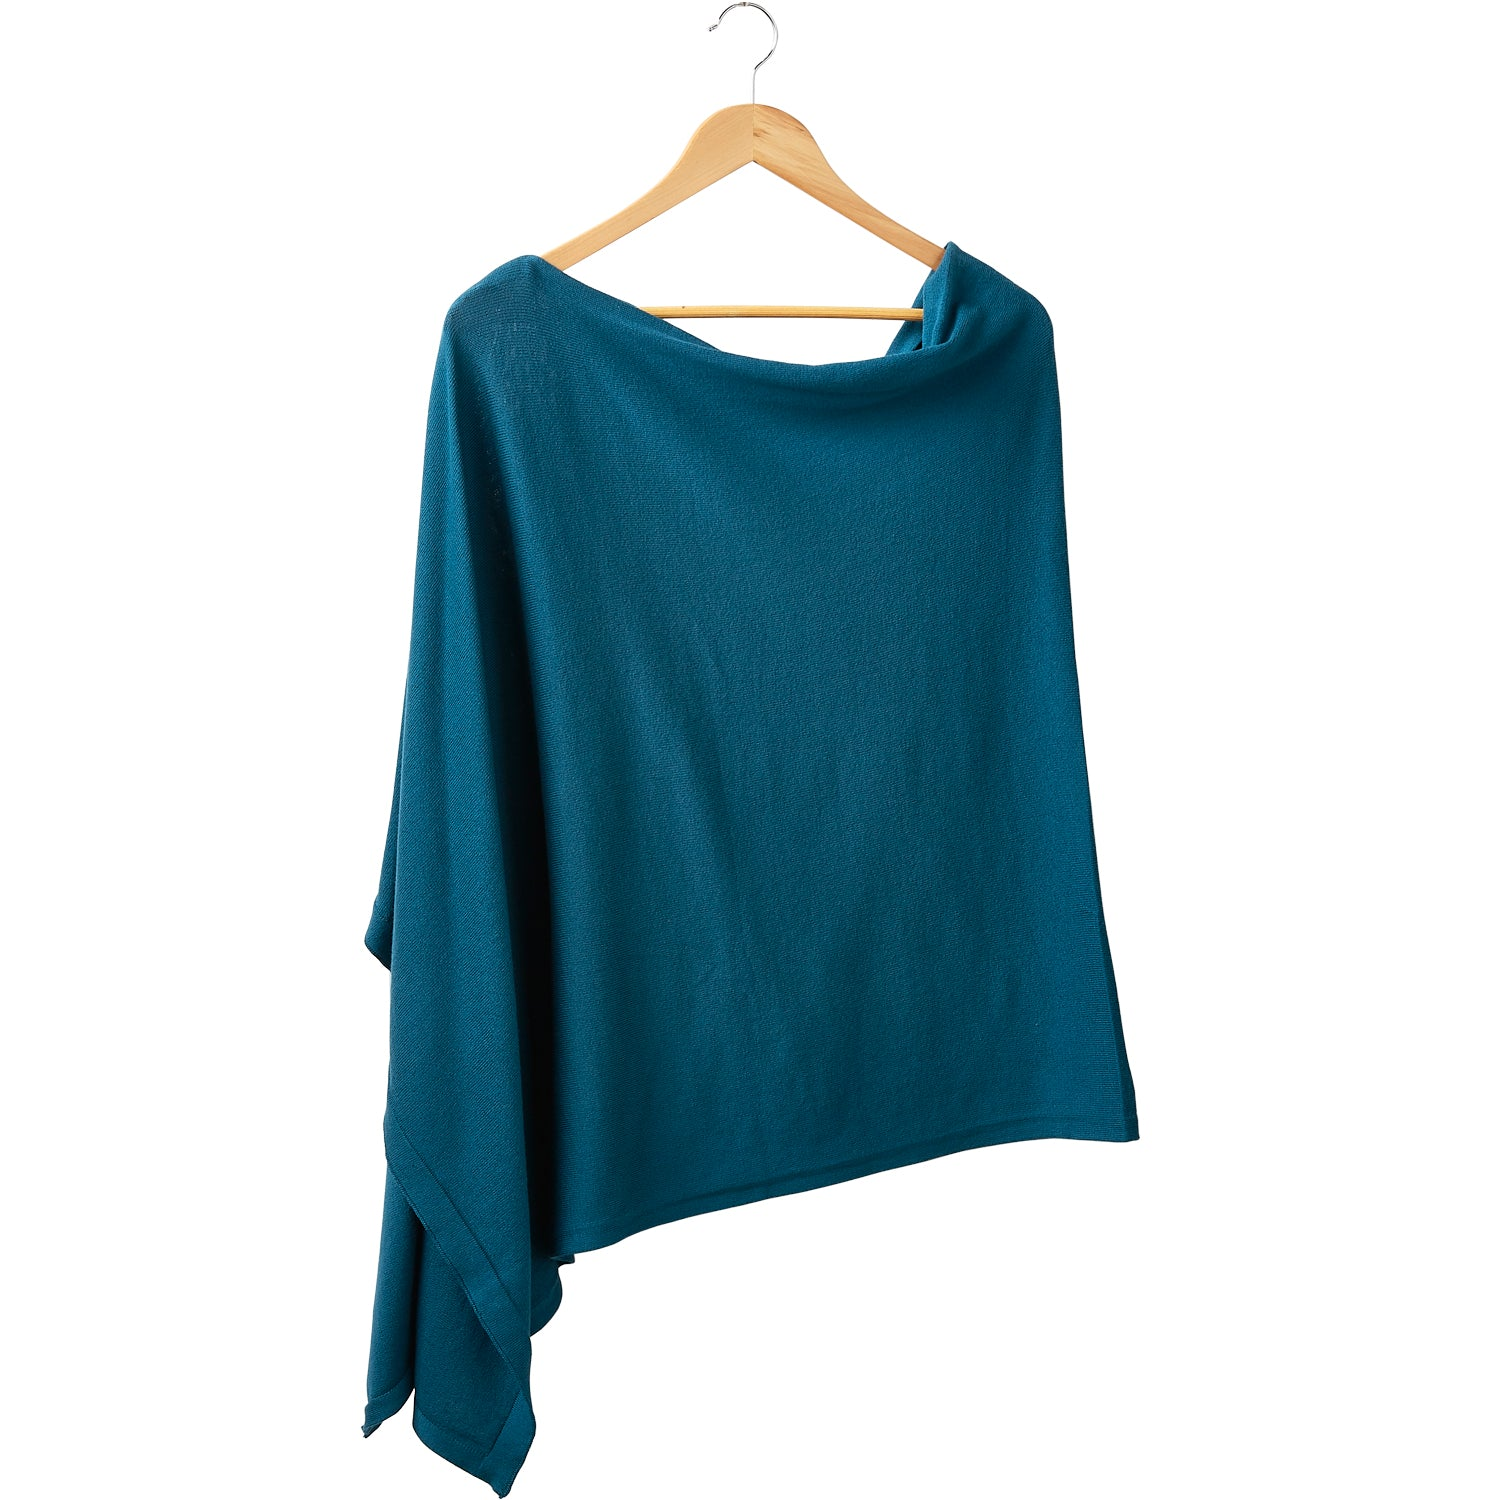 Elegant Solid Cotton Poncho - Teal